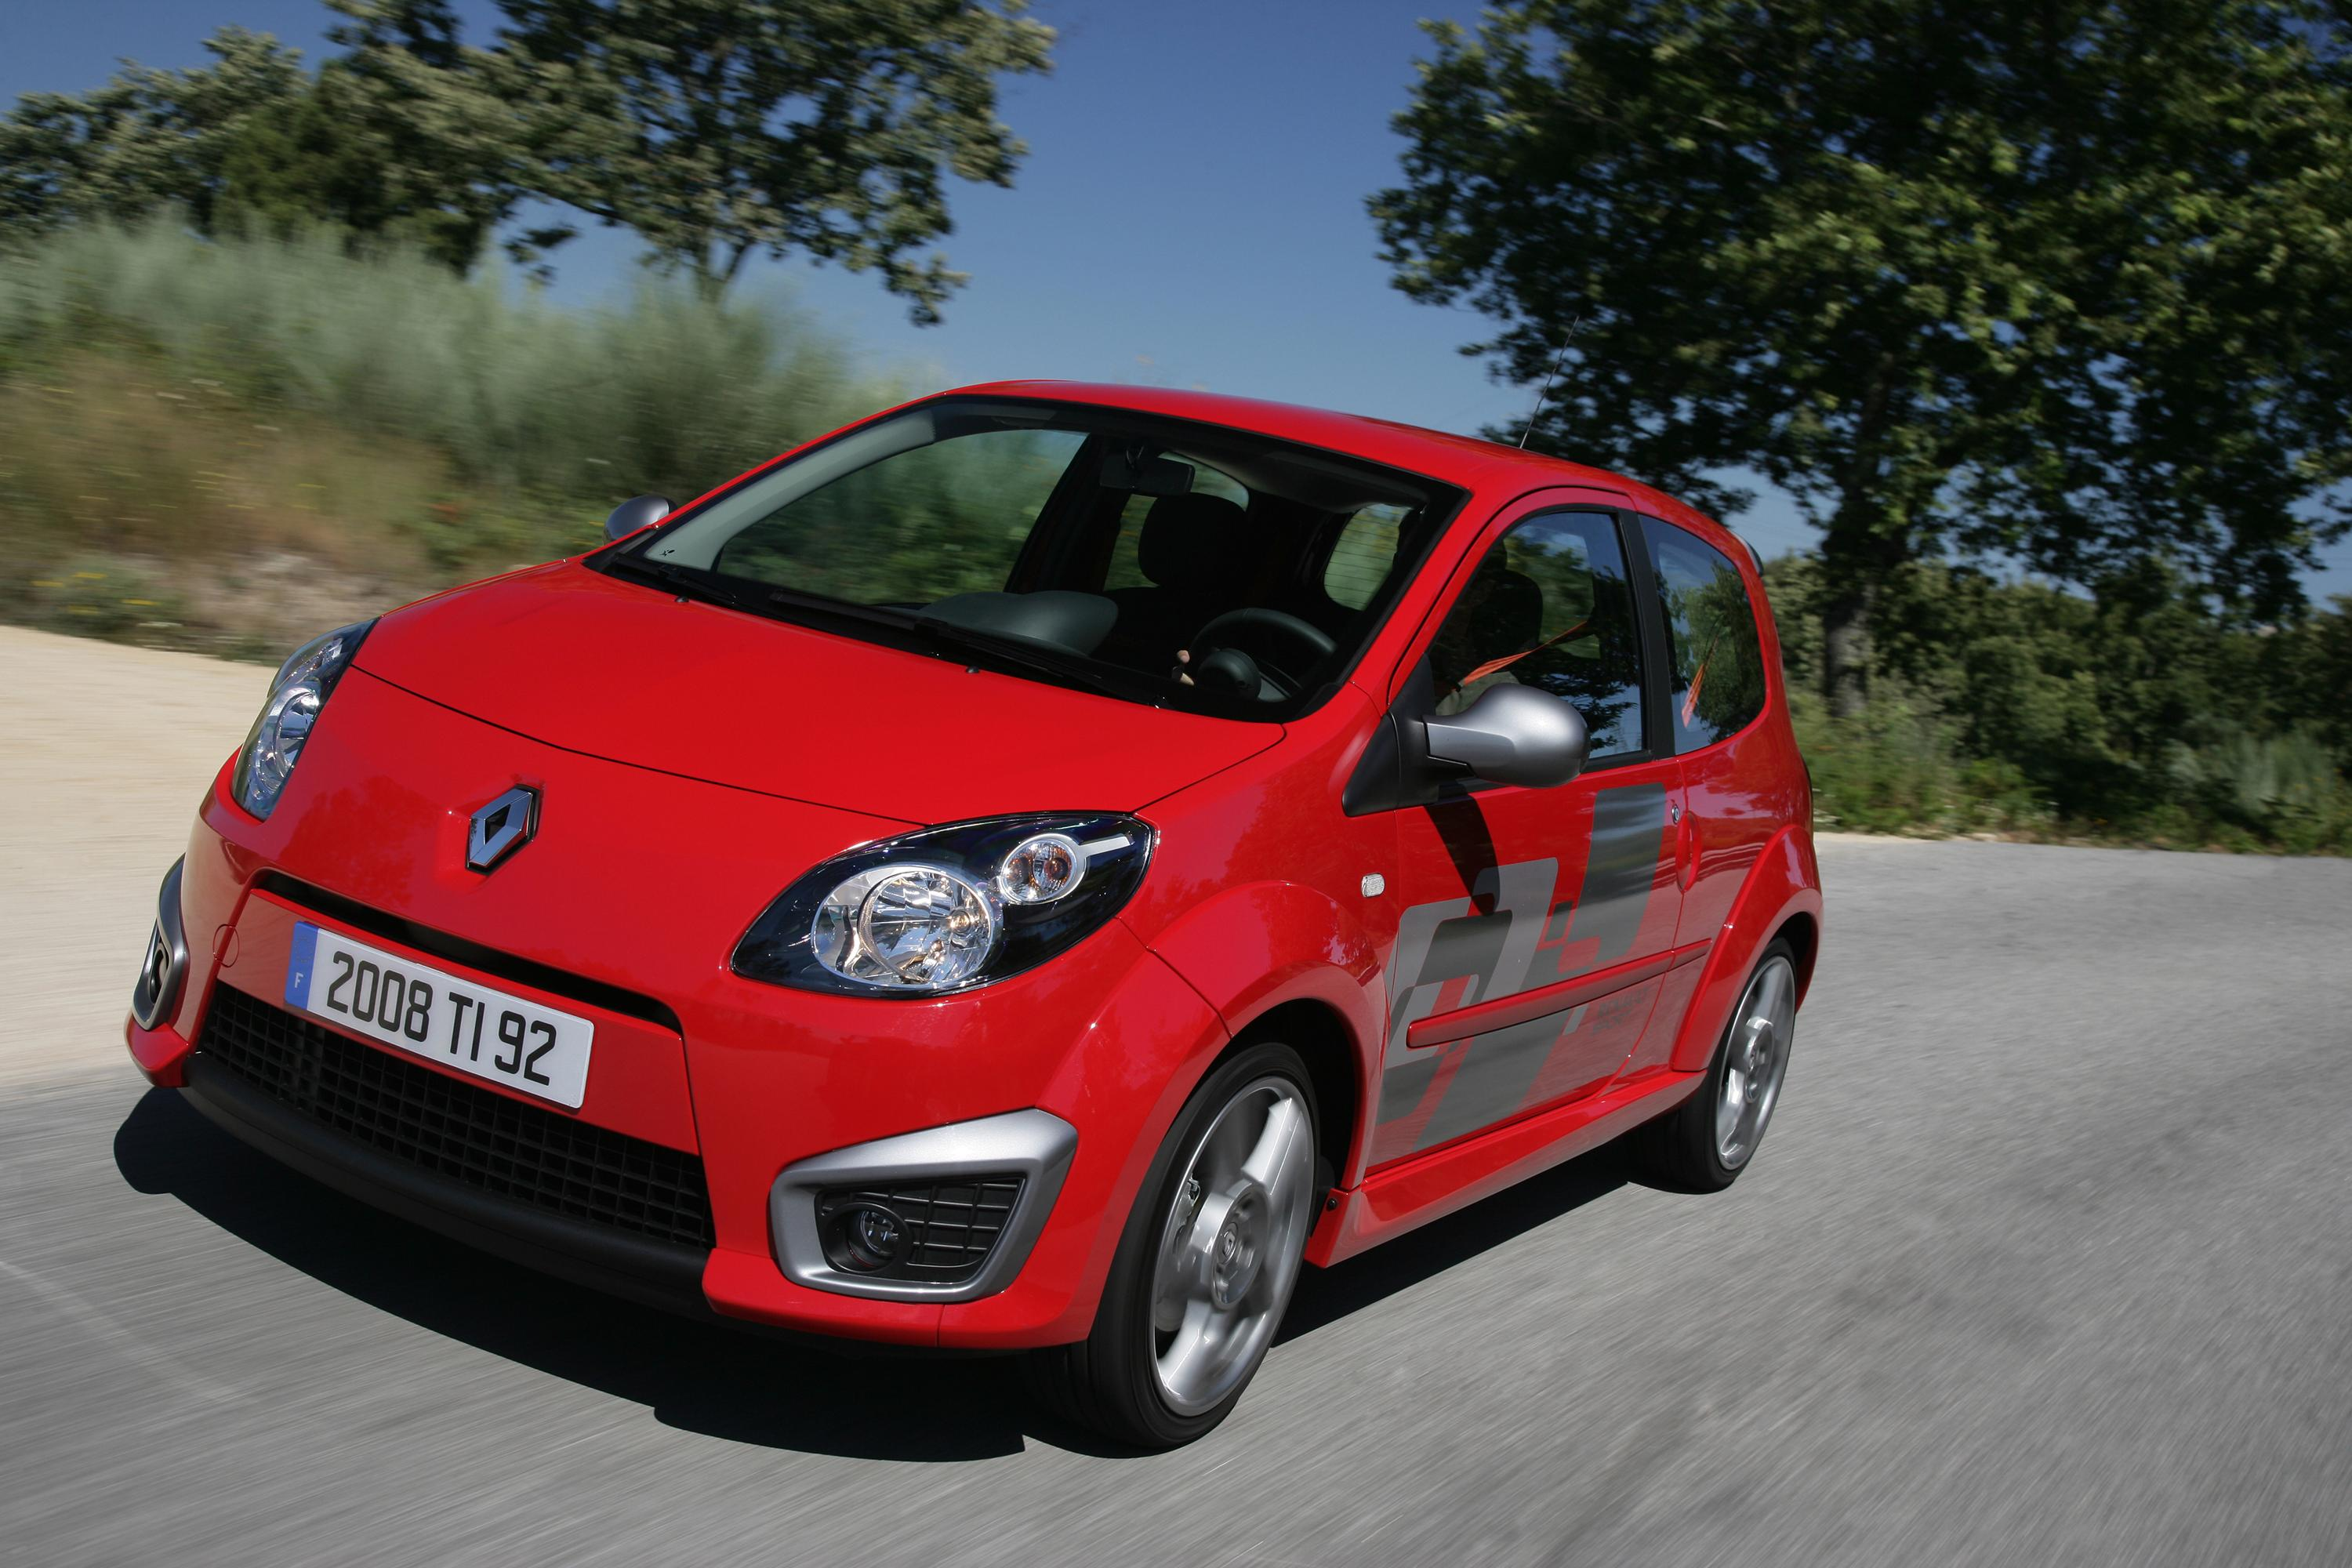 2009 renault twingo photos informations articles. Black Bedroom Furniture Sets. Home Design Ideas